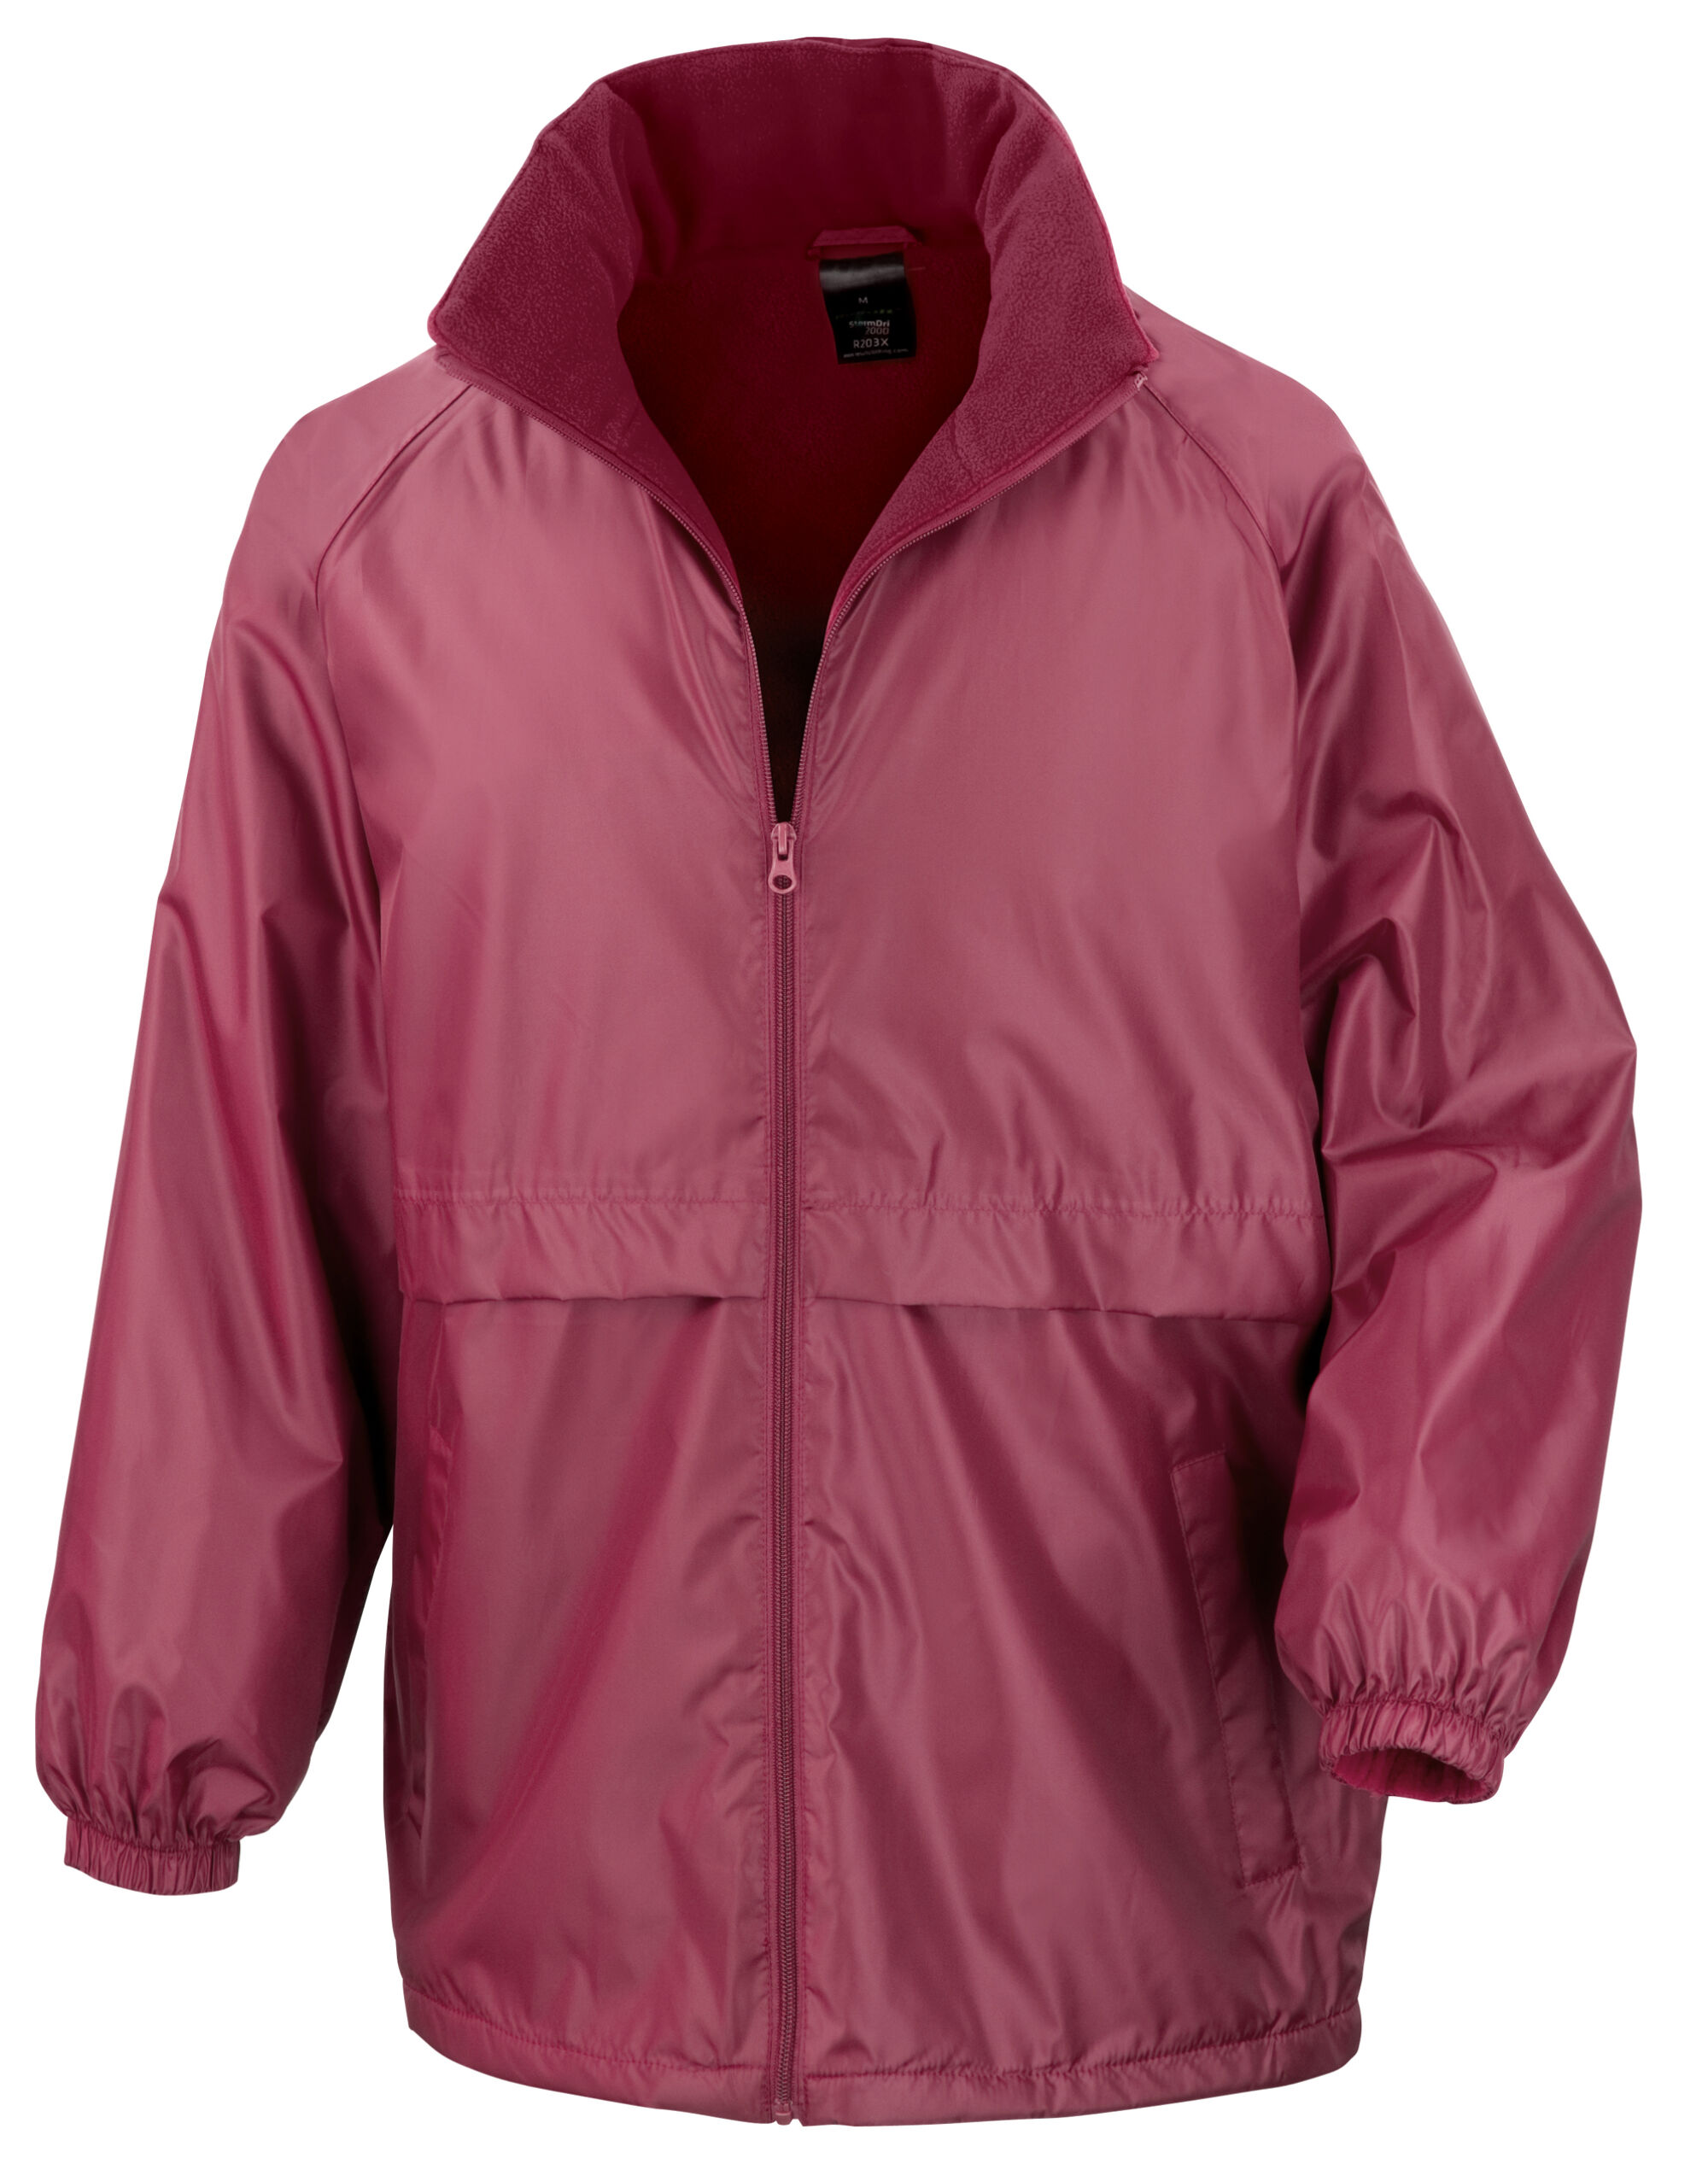 Adult Micro Fleece Jacket